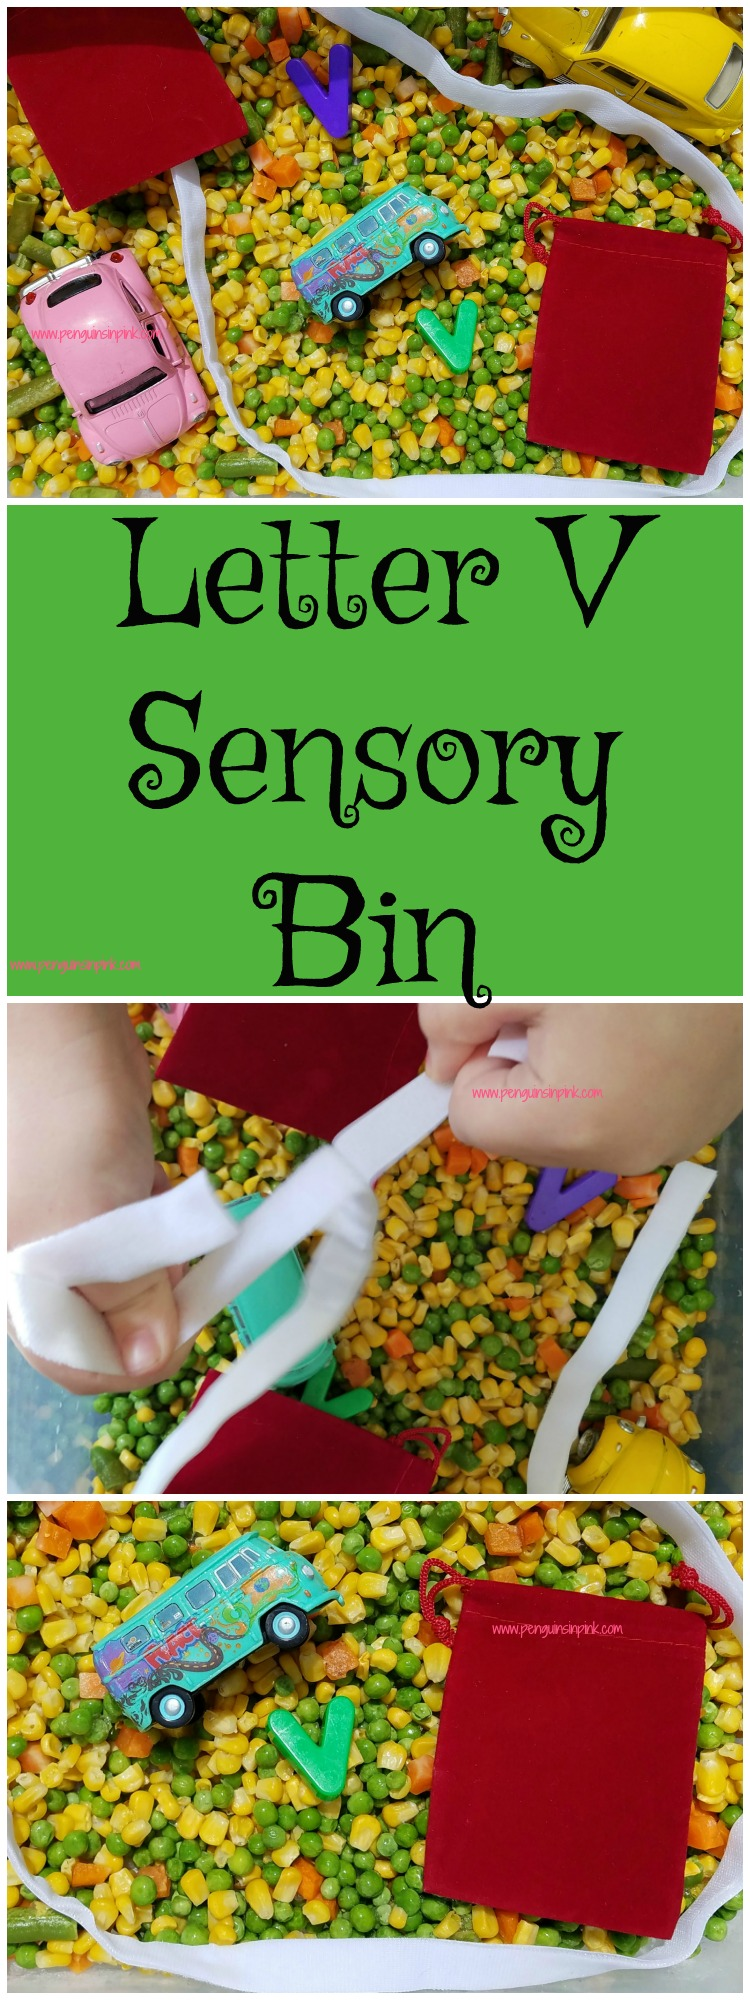 "Letter V Sensory Bin - This vegetable based sensory bin has it all Velcro strips, velvet bags, and other items beginning with the letter ""V""."